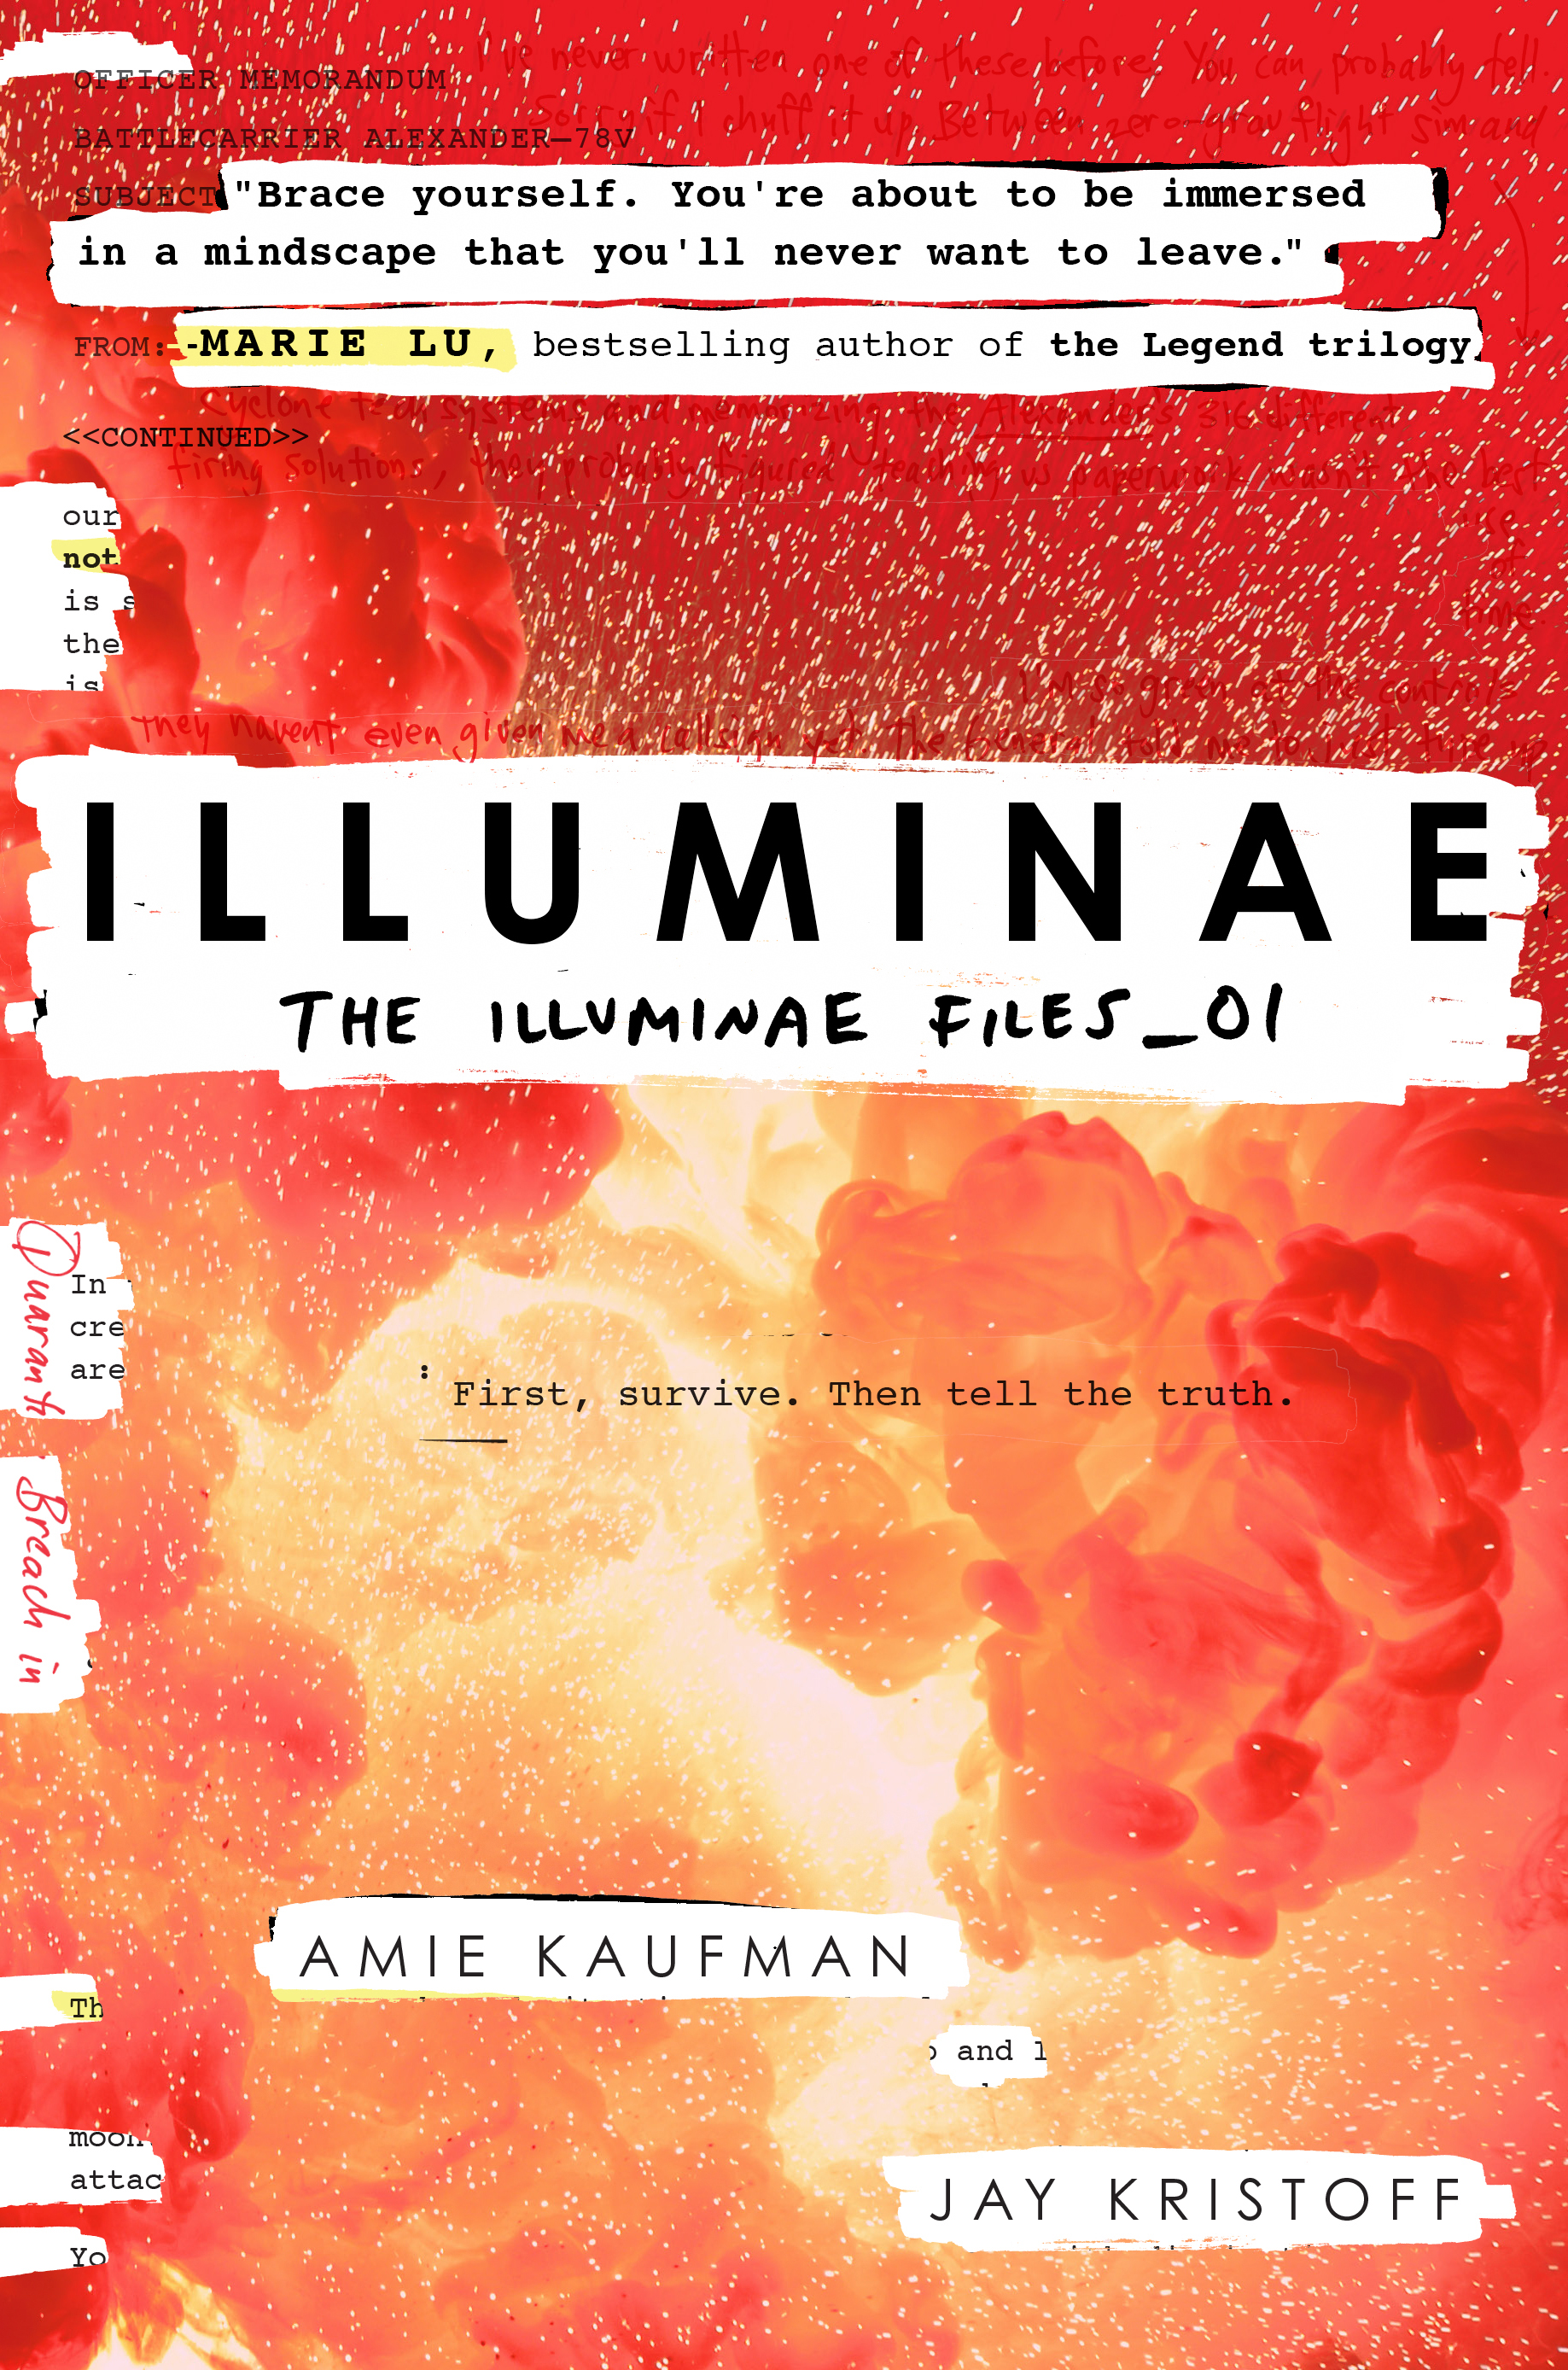 Illuminae by Amie Kaufman and Jay Kristoff -  The 29 Best YA Book Covers of 2015 as Chosen by Epic Reads Designers